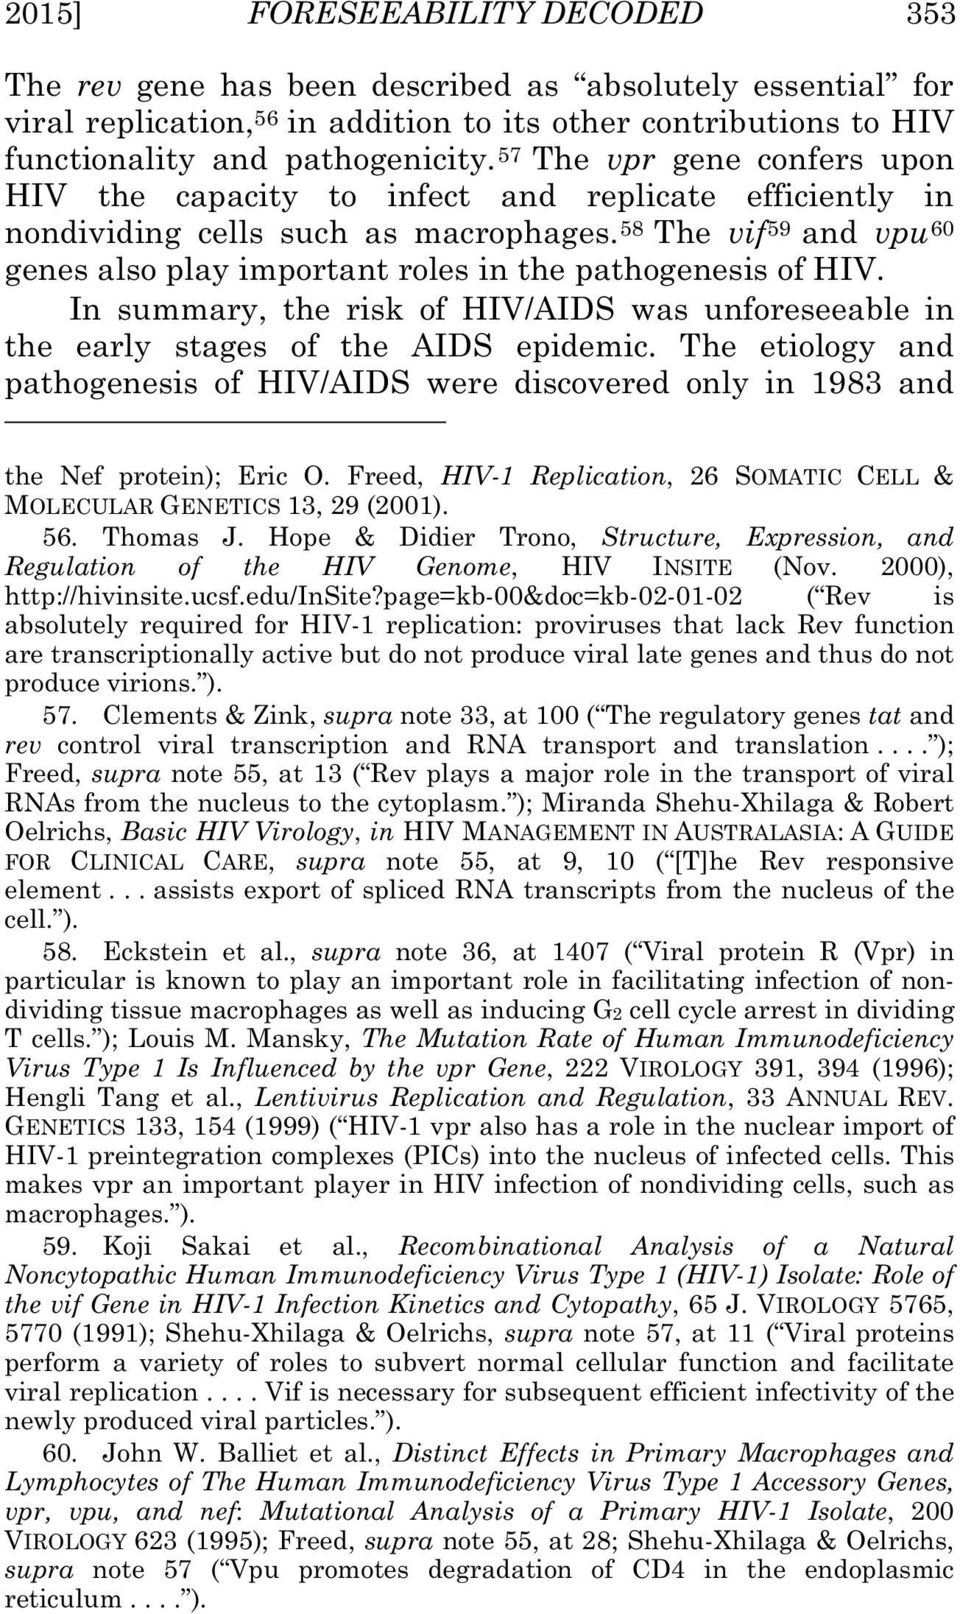 58 The vif 59 and vpu 60 genes also play important roles in the pathogenesis of HIV. In summary, the risk of HIV/AIDS was unforeseeable in the early stages of the AIDS epidemic.